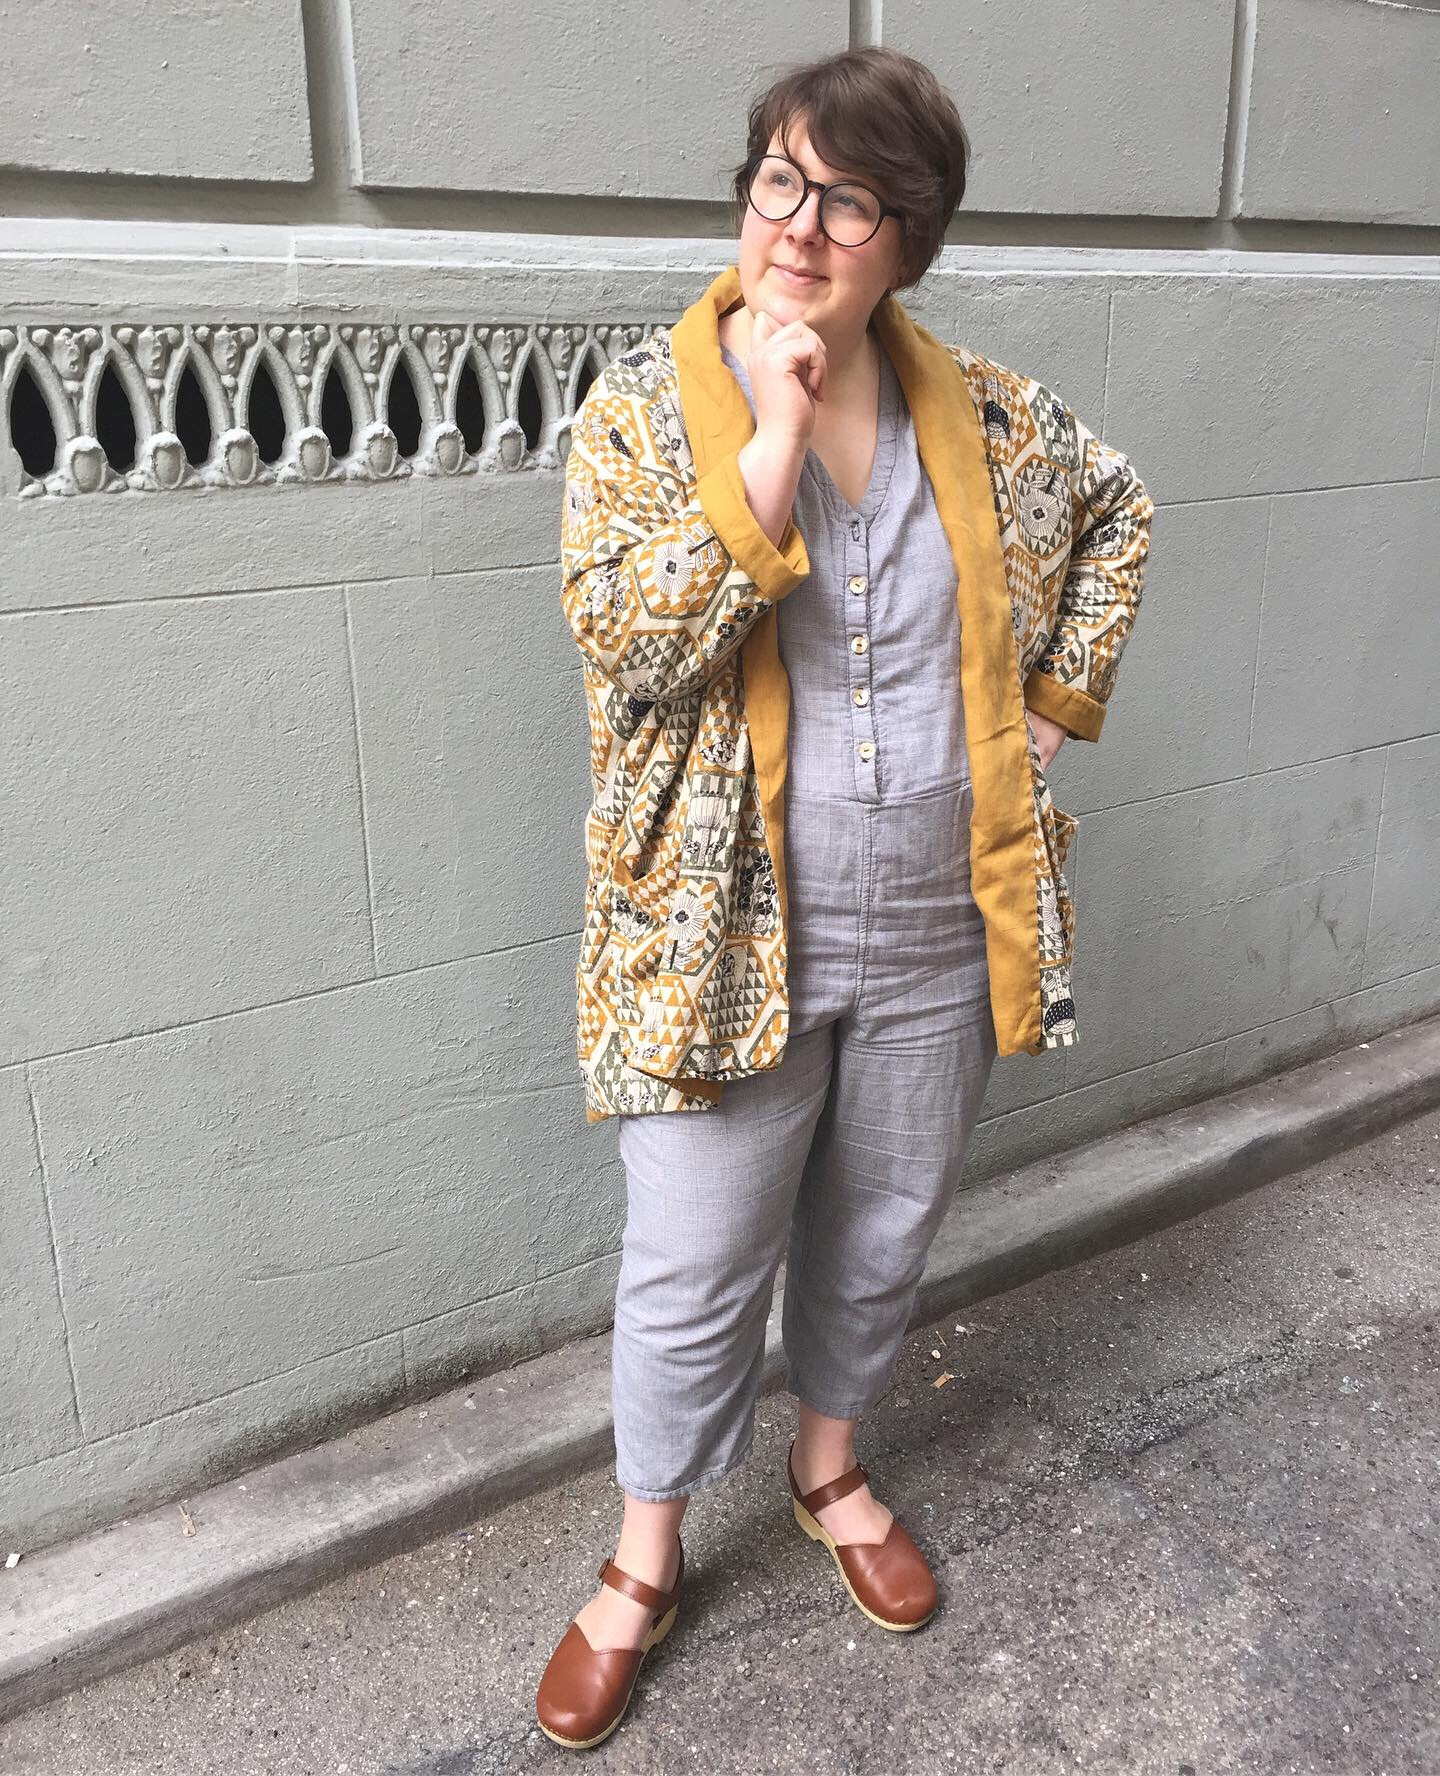 May 28: Robert Collection Jumpsuit & Wiksten Haori